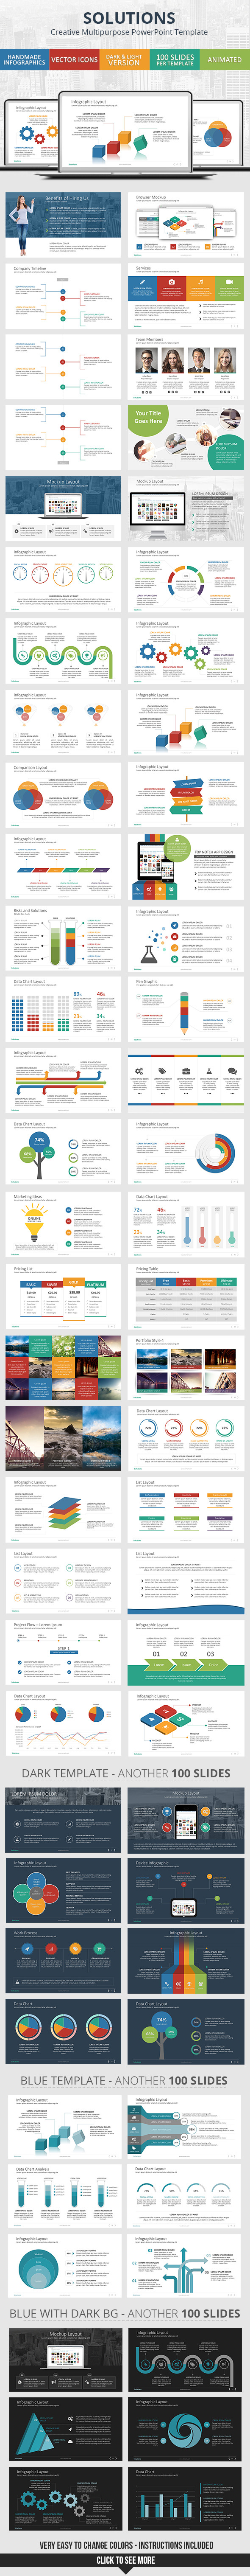 Solutions – PowerPoint Presentation Template (GraphicRiver – 10284842)